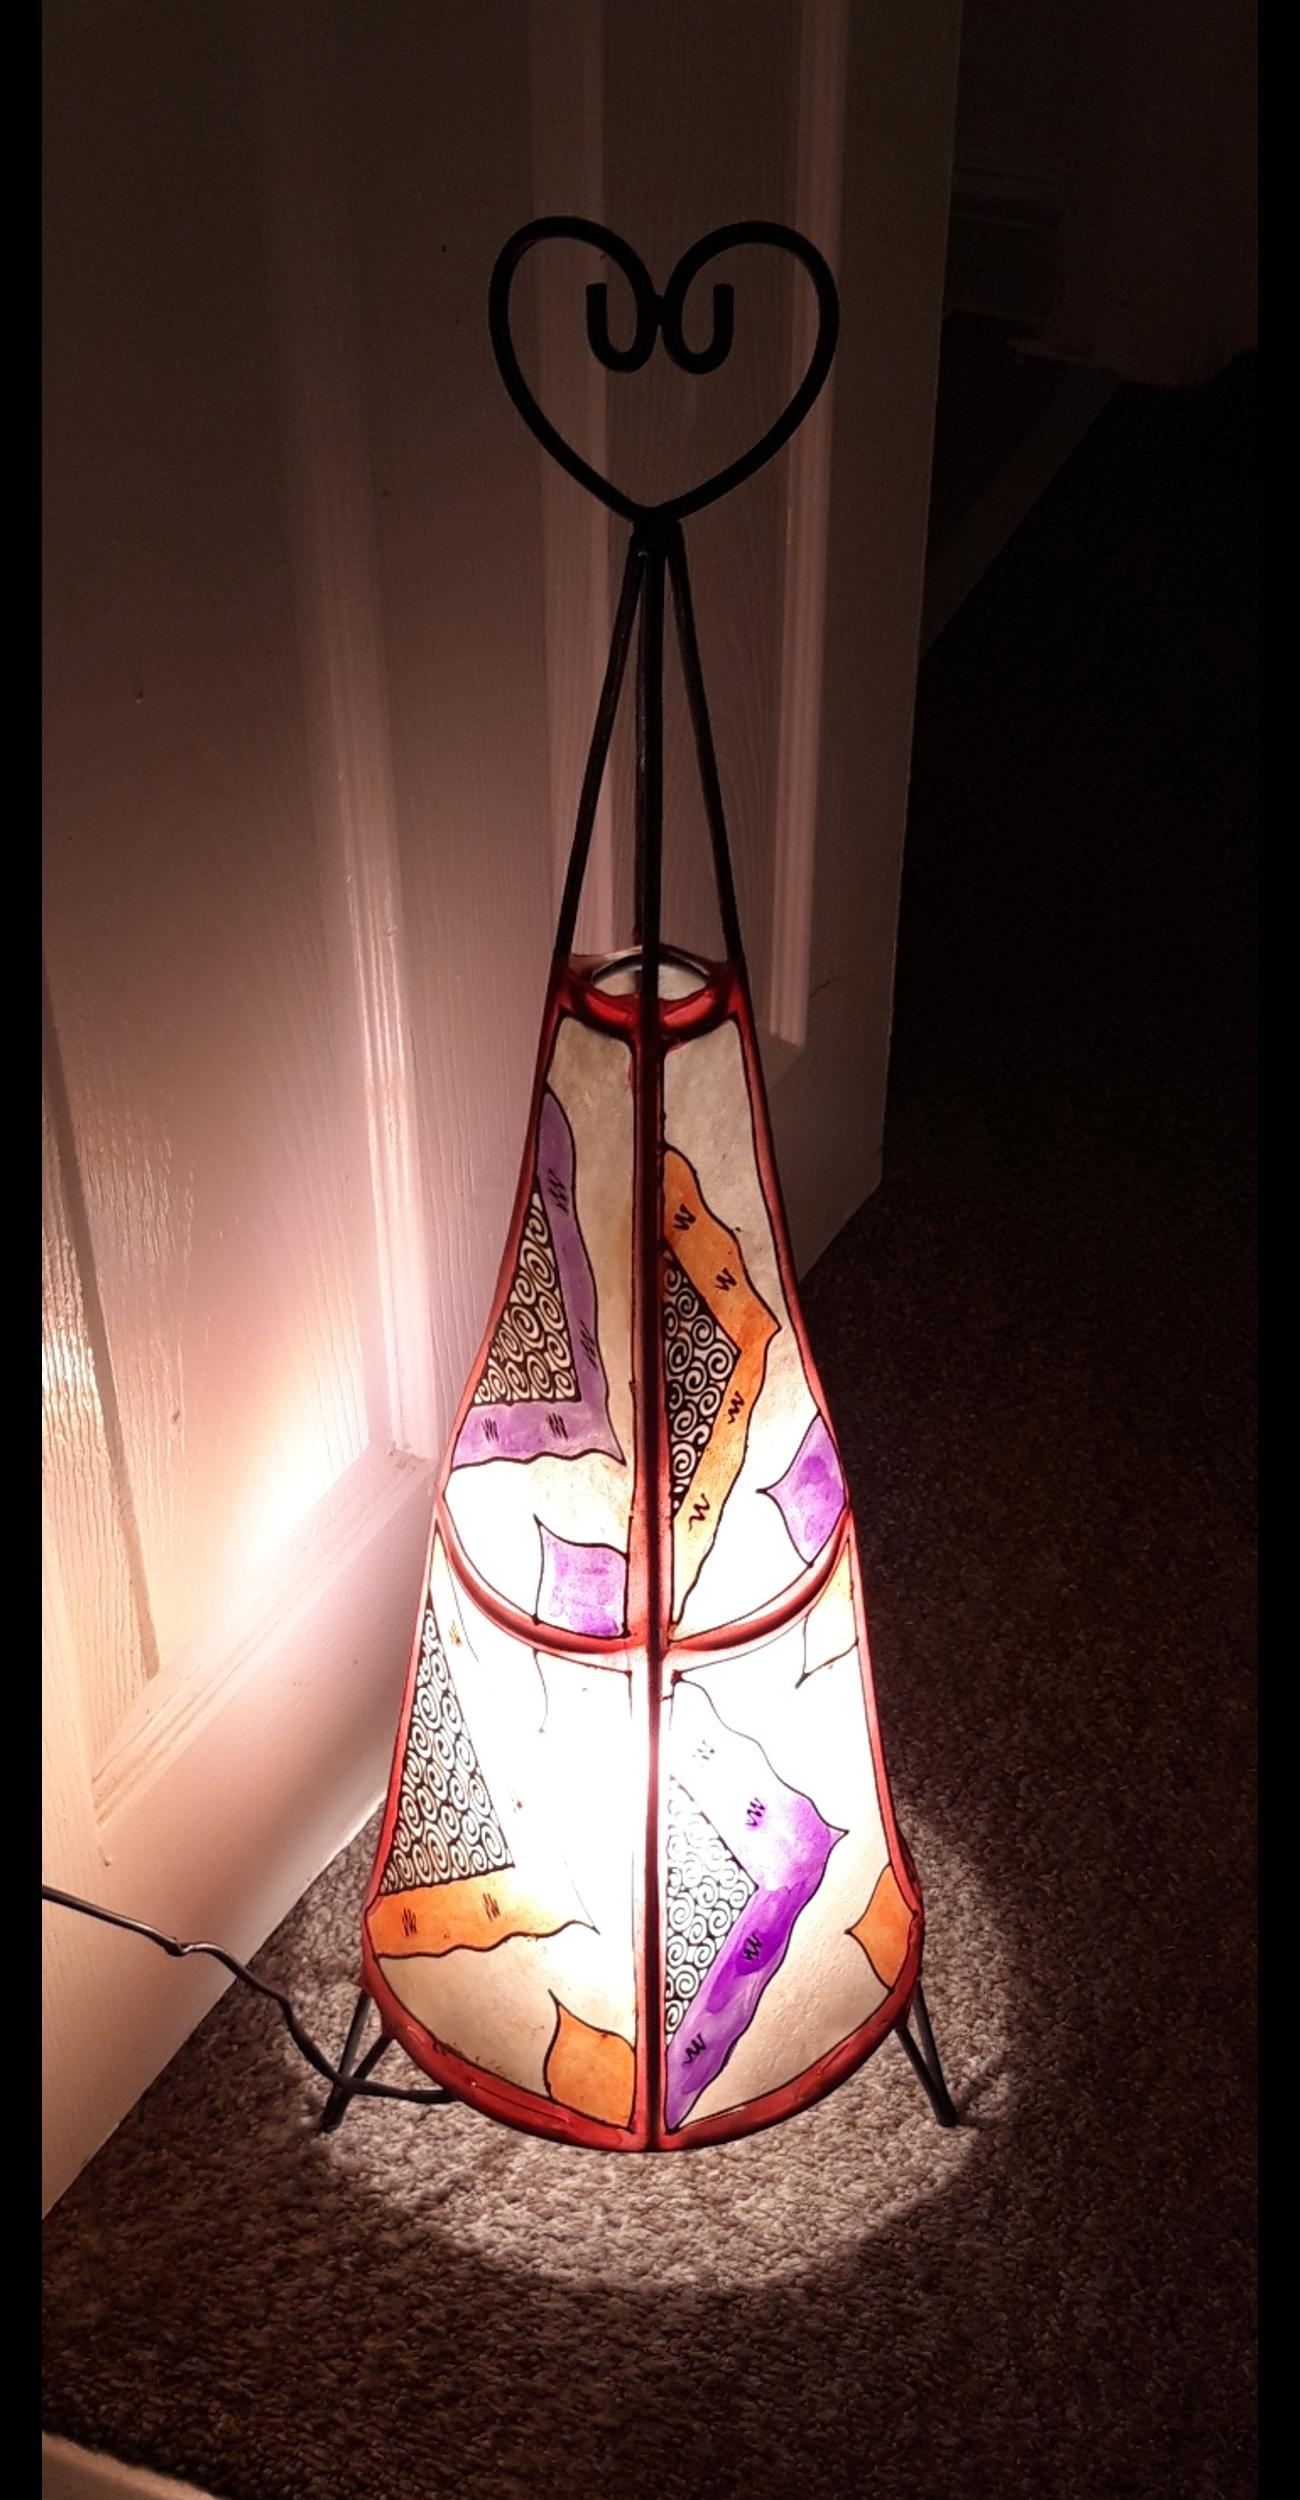 Moroccan Henna Lamp In S5 Sheffield For 35 00 For Sale Shpock